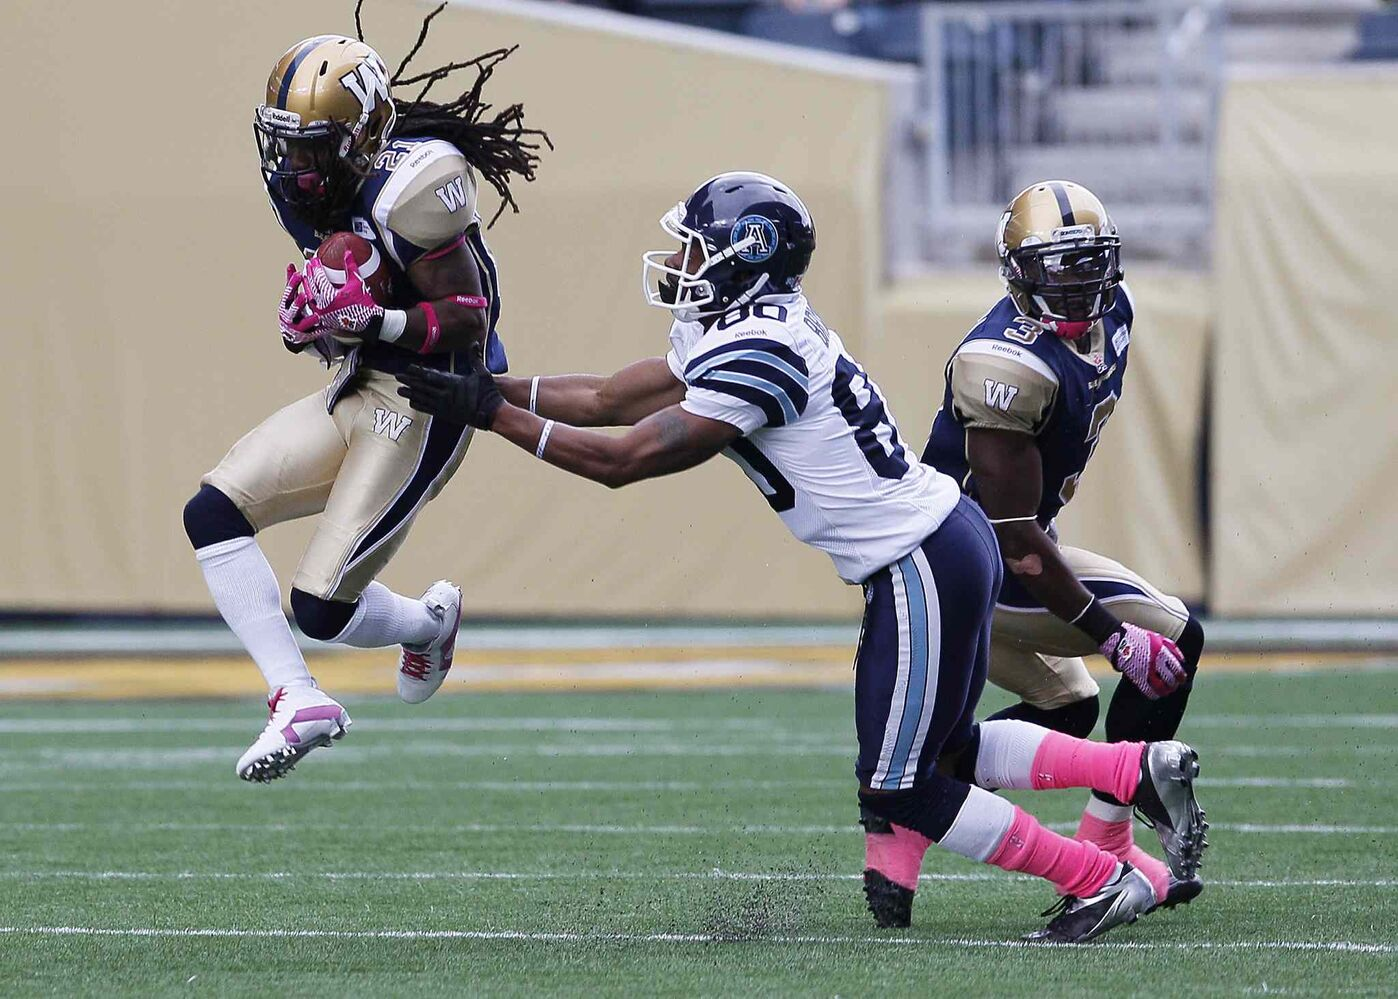 Winnipeg Blue Bombers' Alex Suber (21) snags the pass in front of Toronto Argonauts' Romby Bryant (80).